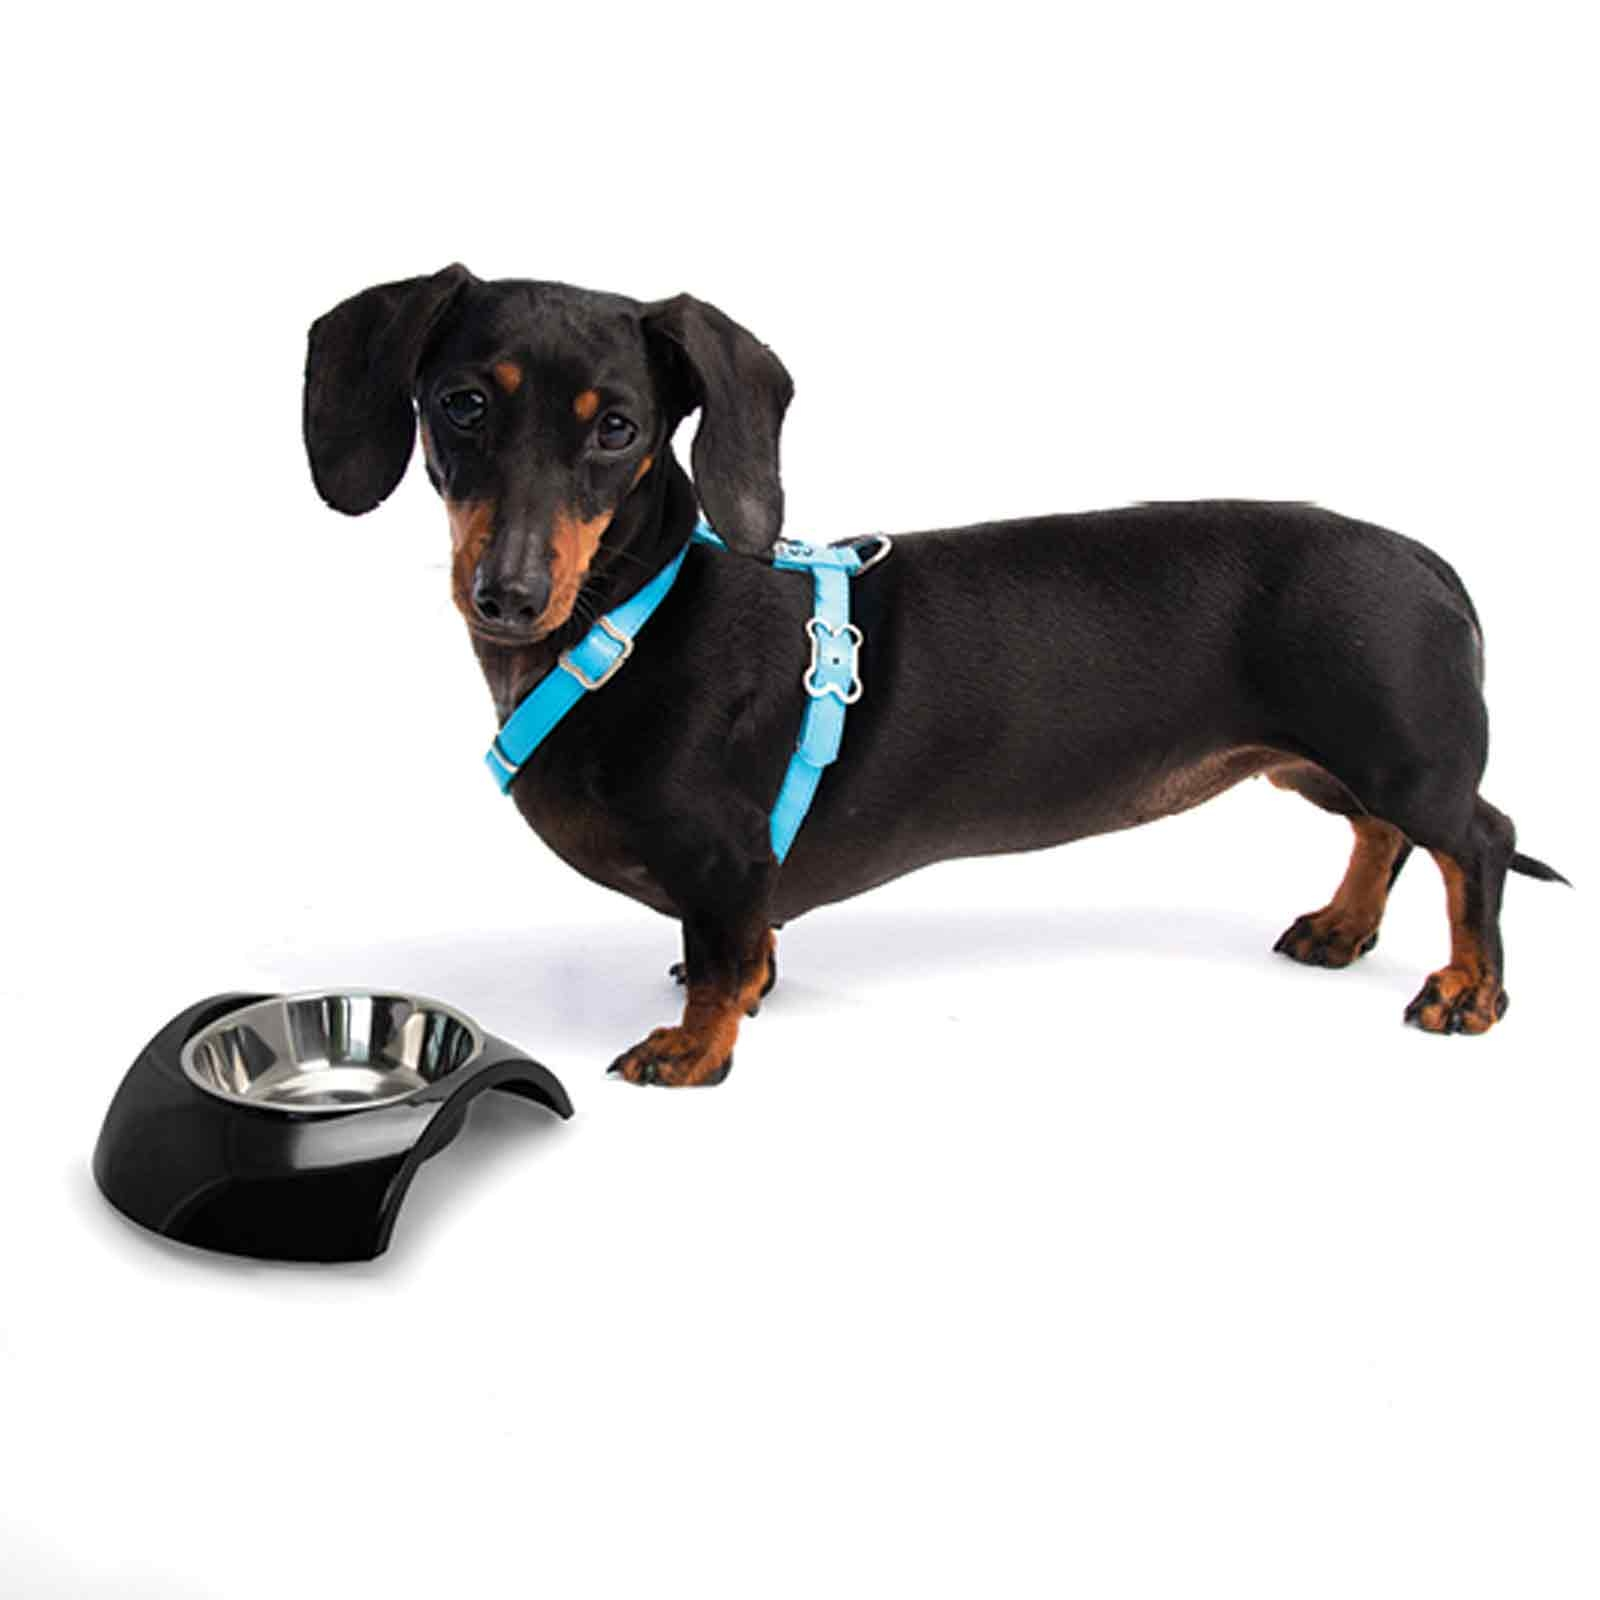 rogz-luna-bowl-and-h-harness-with-dog_1.jpg